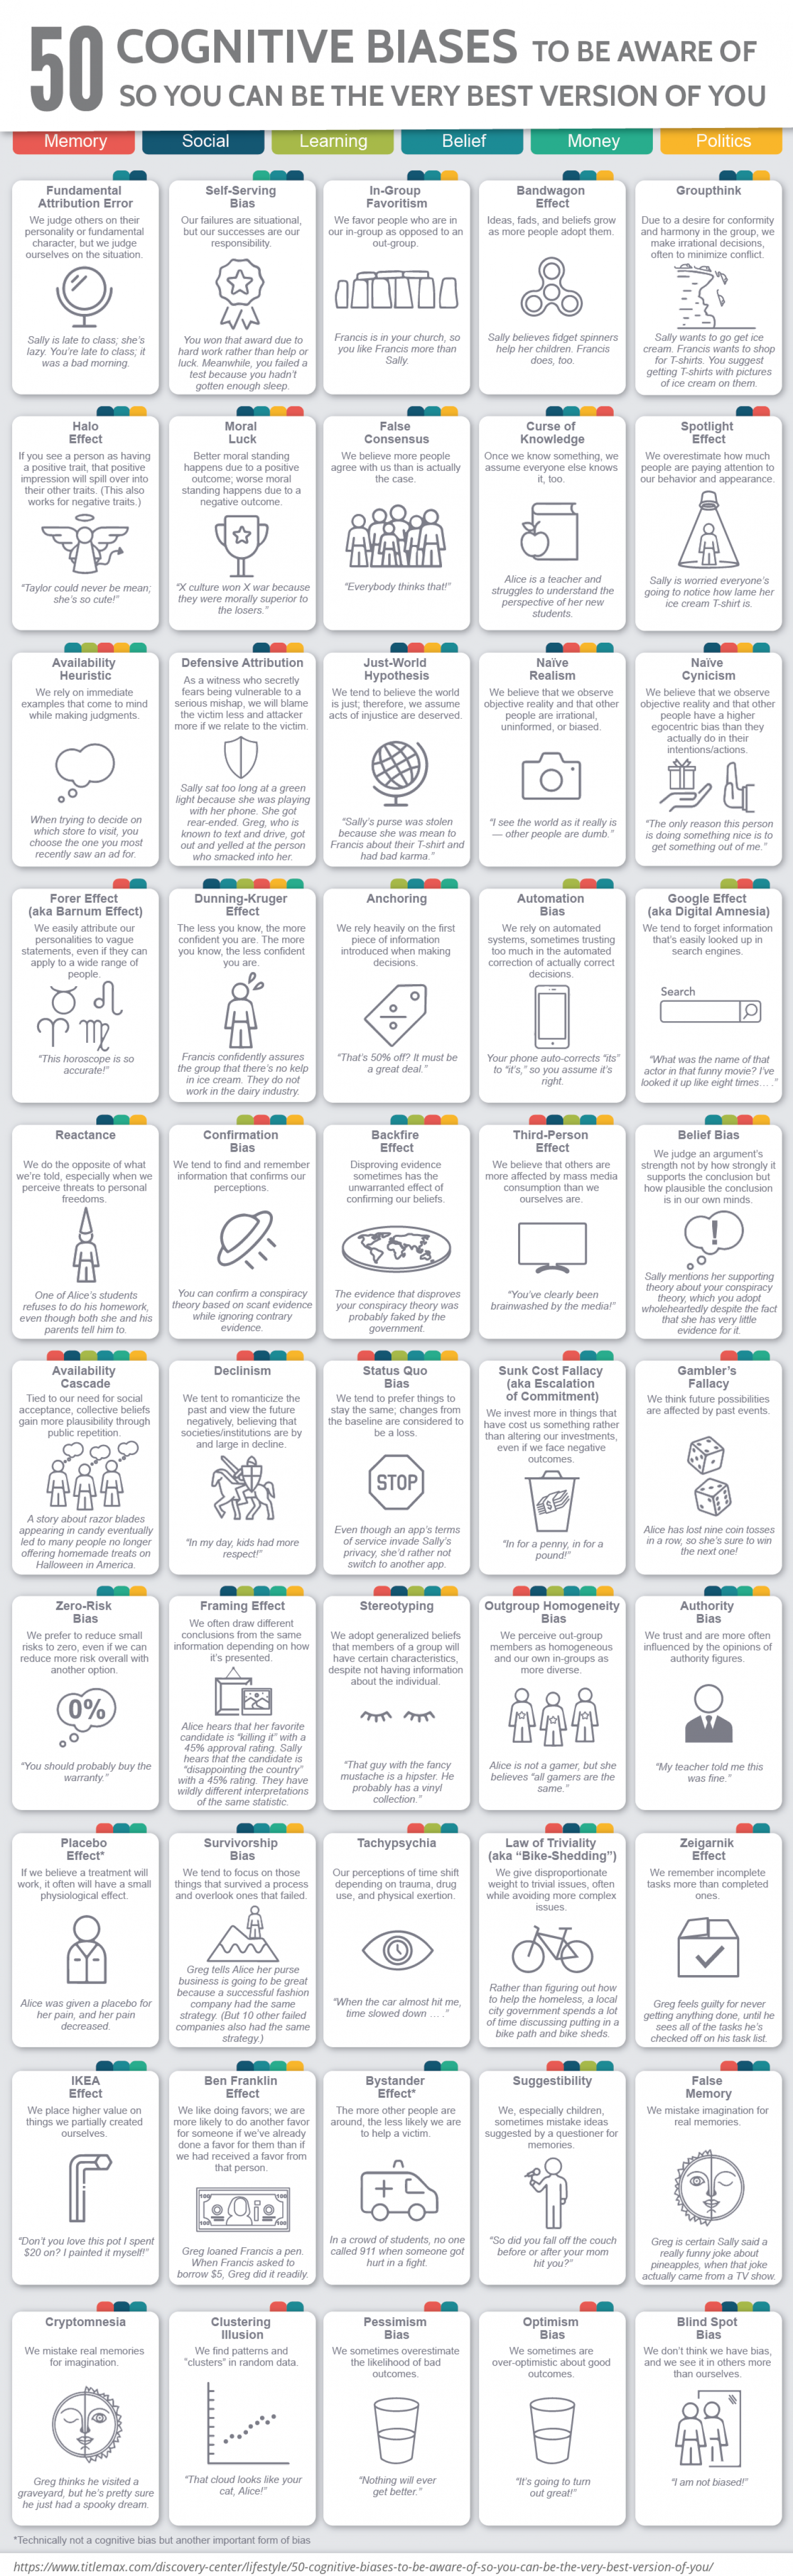 50 Common Cognitive Biases Infographic